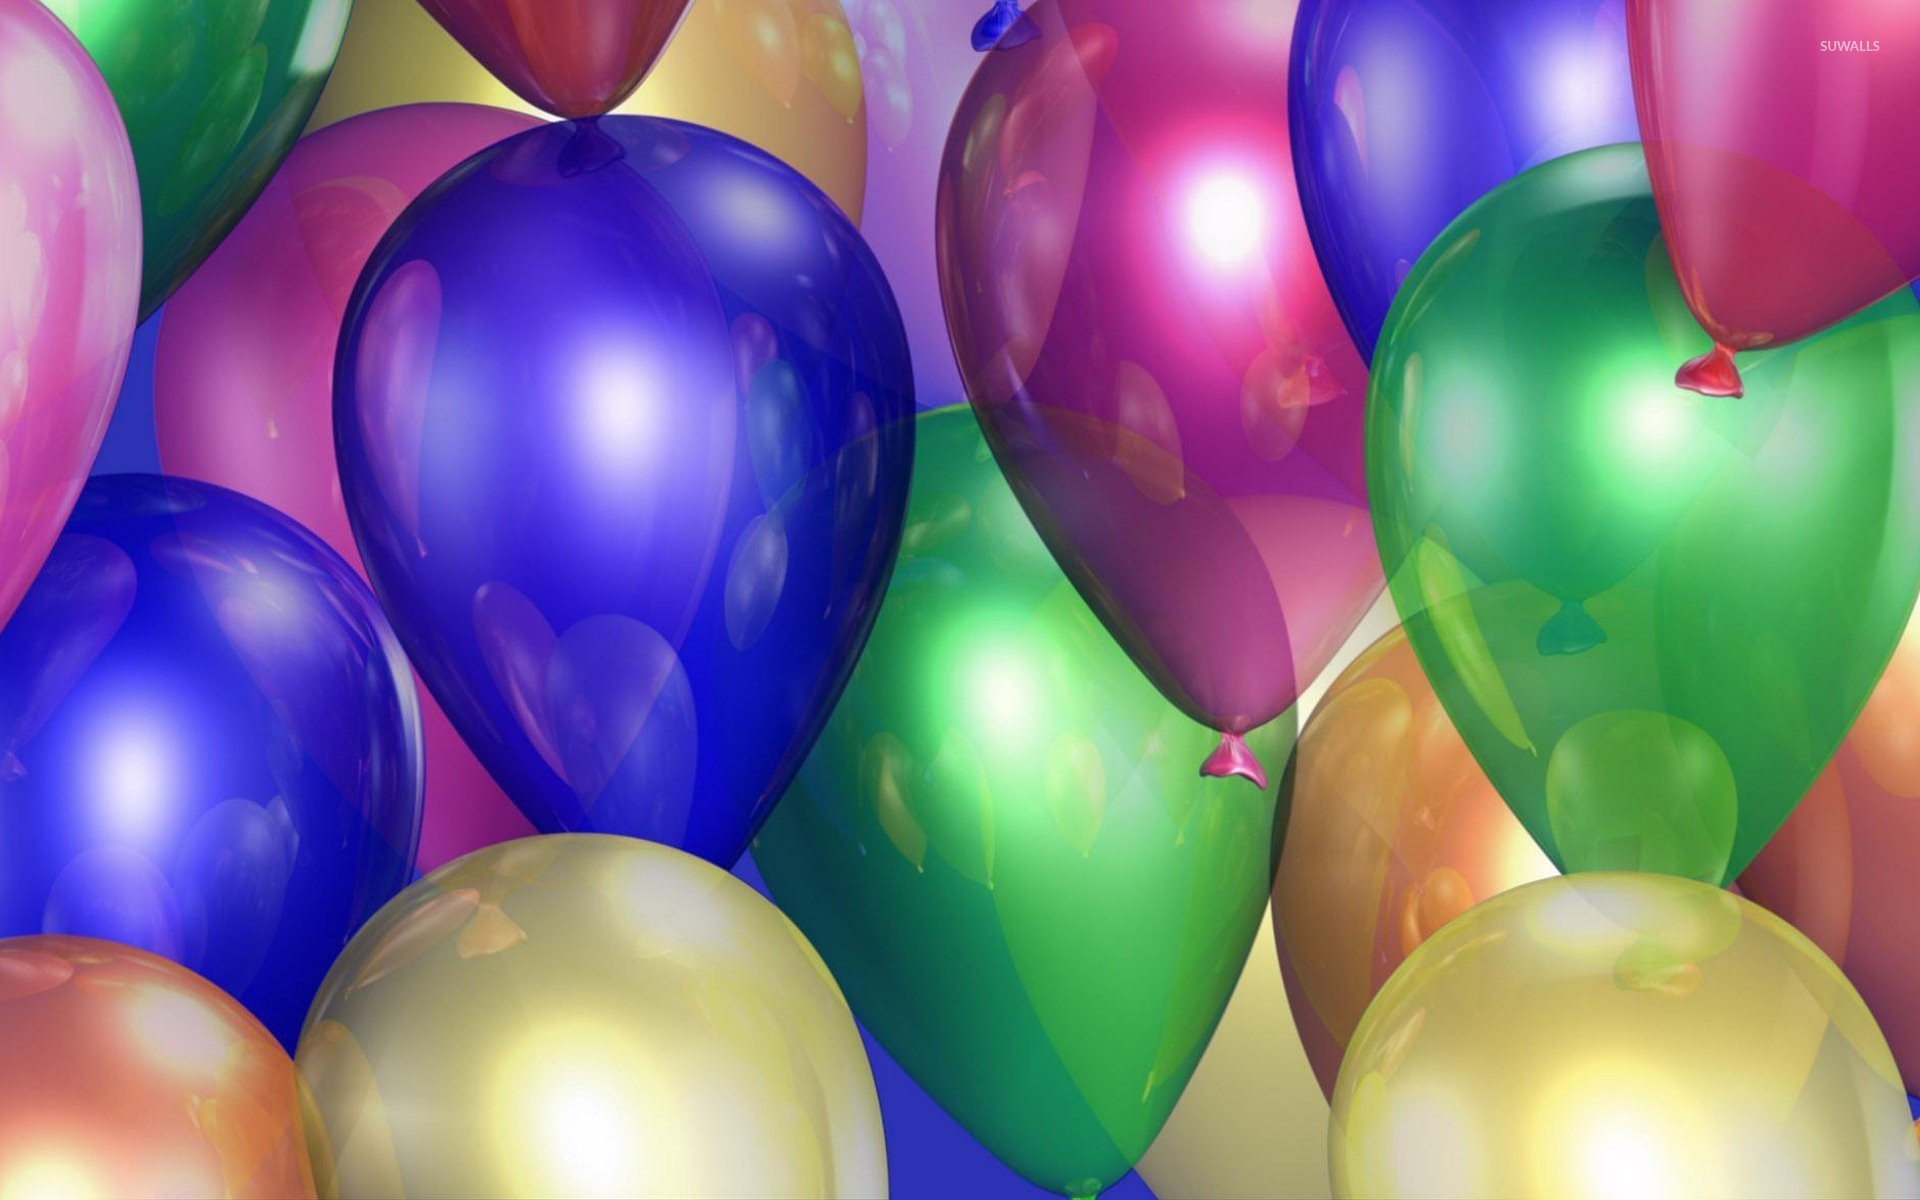 Colorful Shiny Balloons Wallpaper Photography Wallpapers